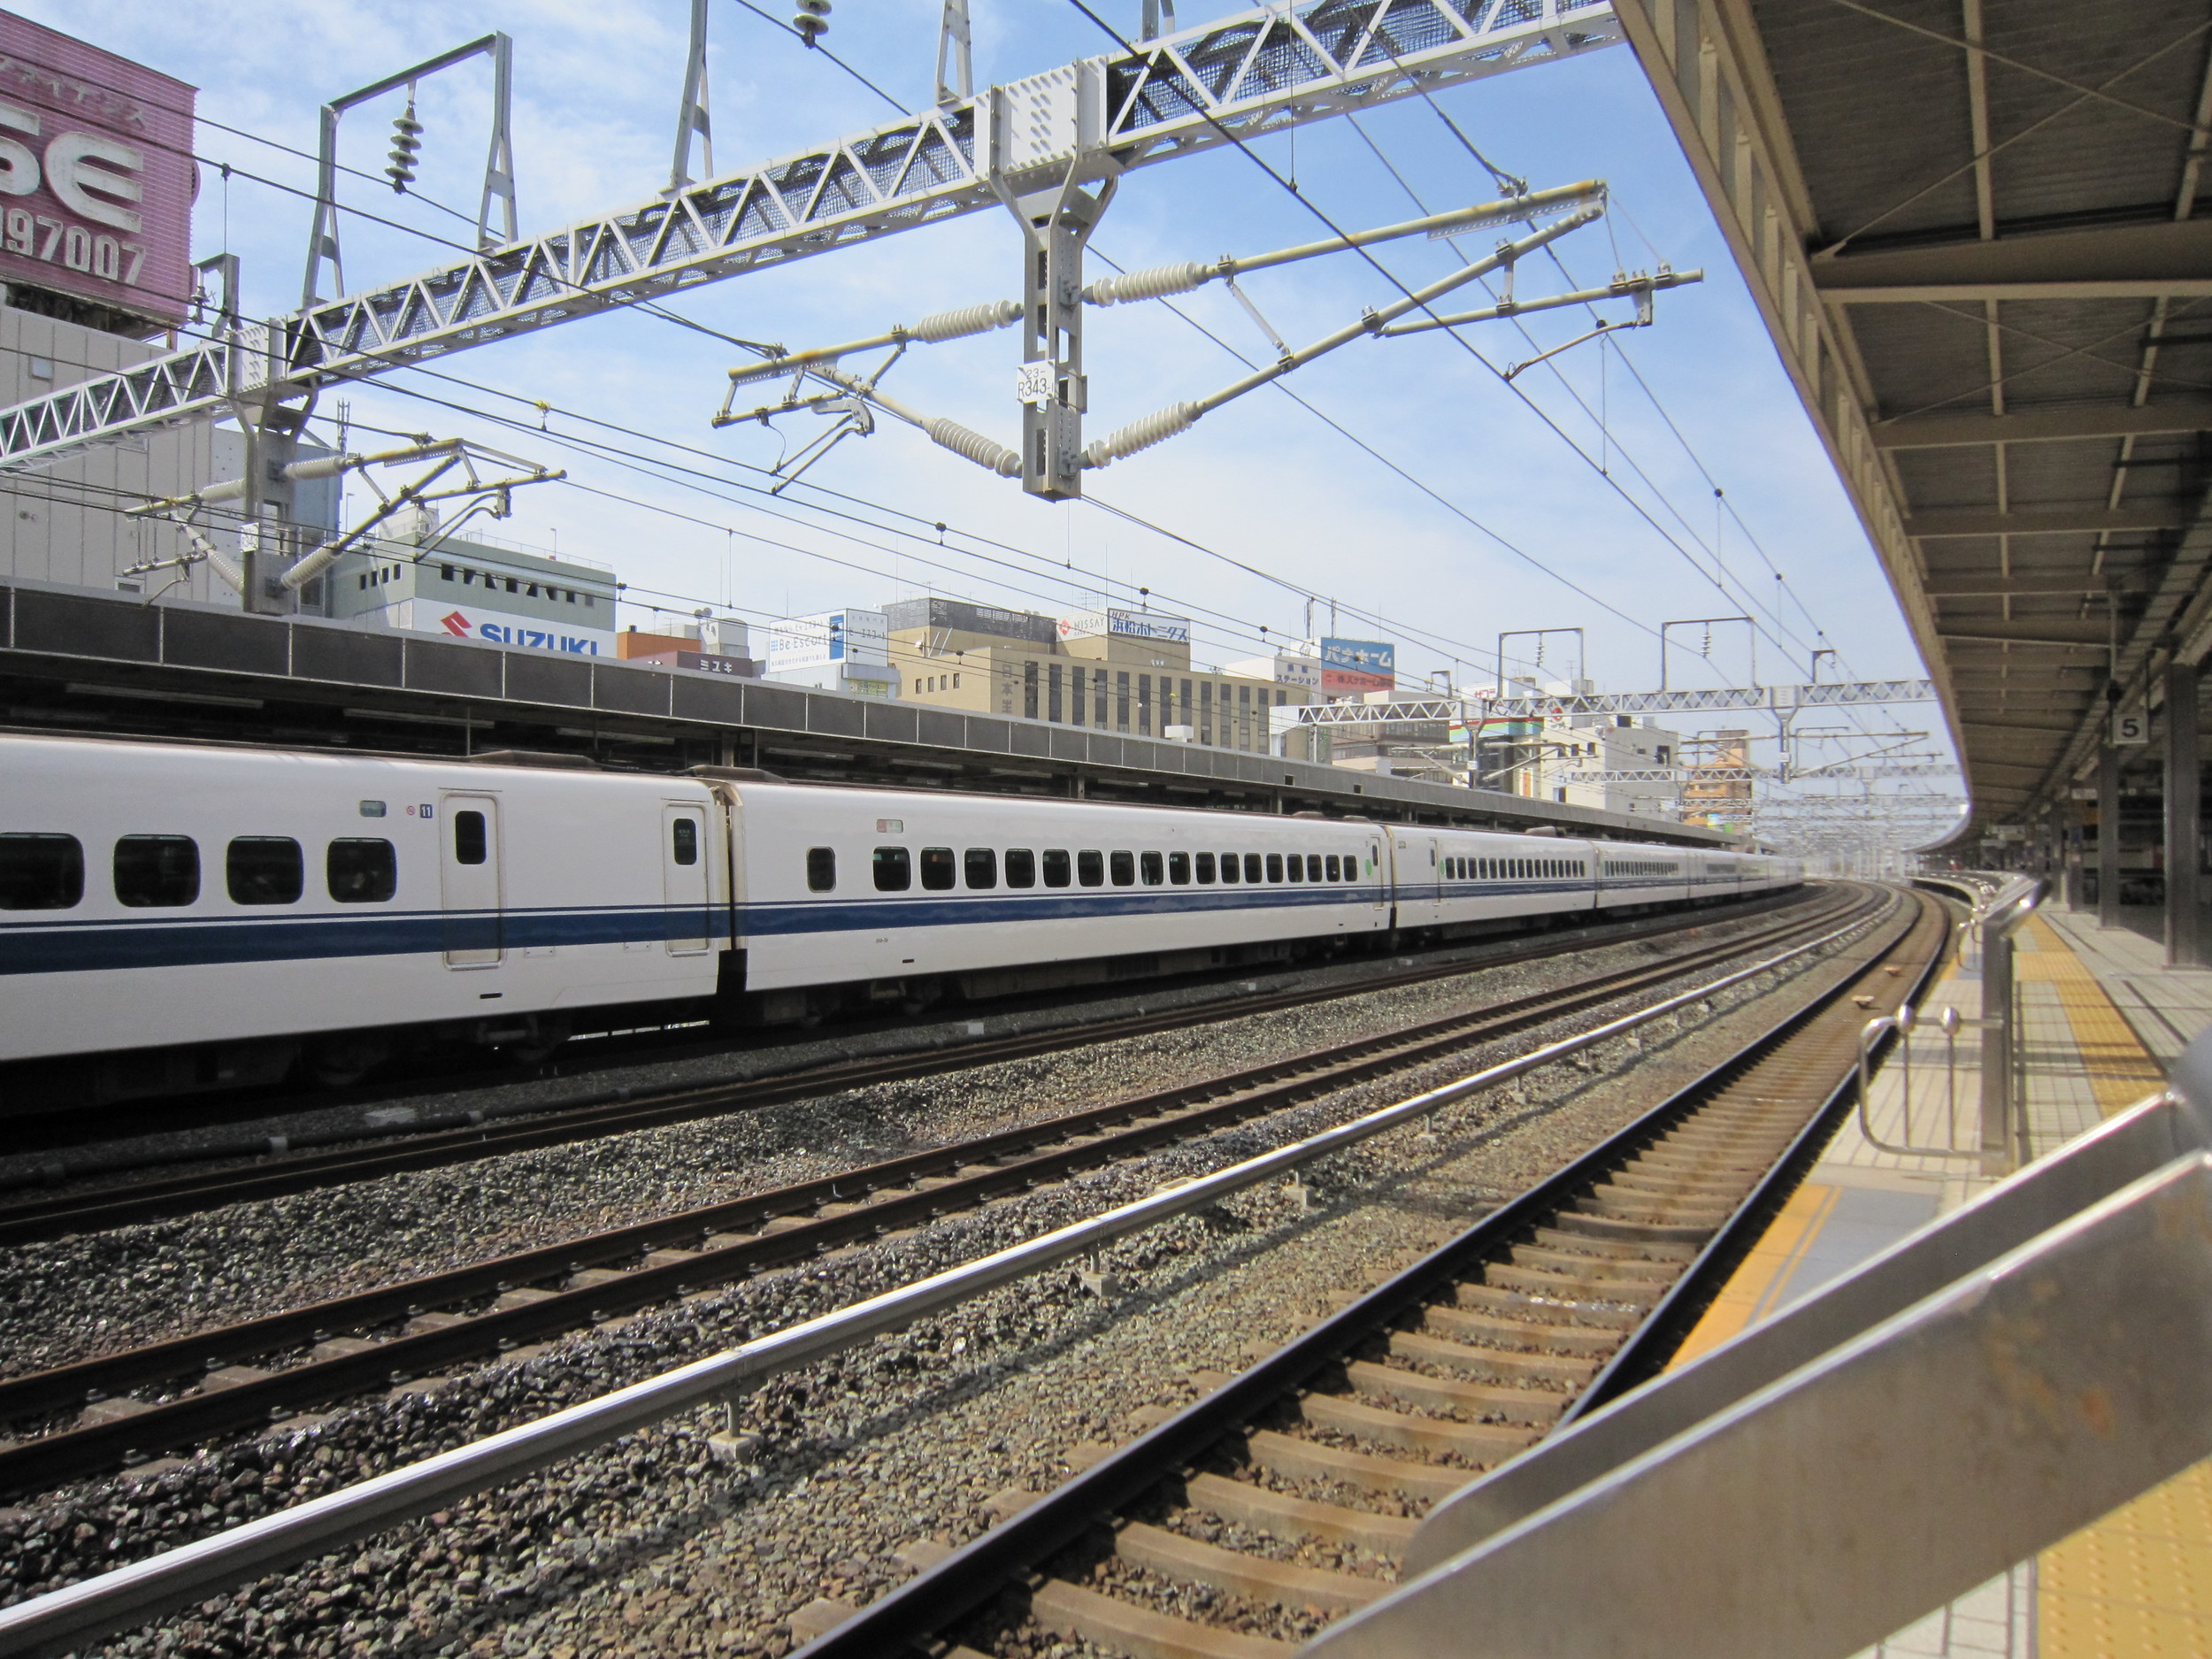 The Shinkansen